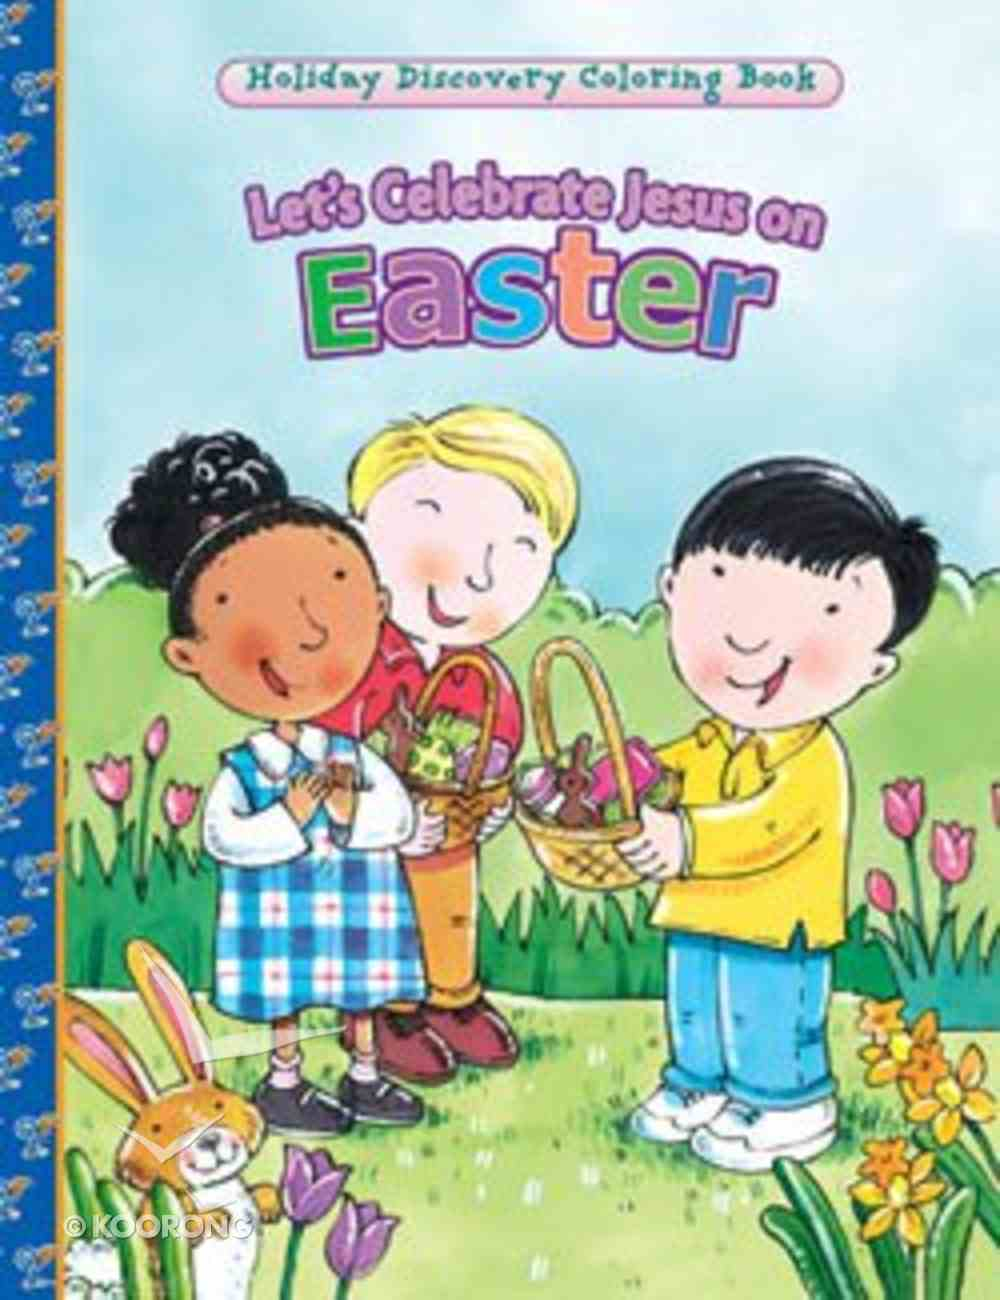 Let's Celebrate Jesus on Easter (Holiday Discovery Coloring Books Series) Paperback